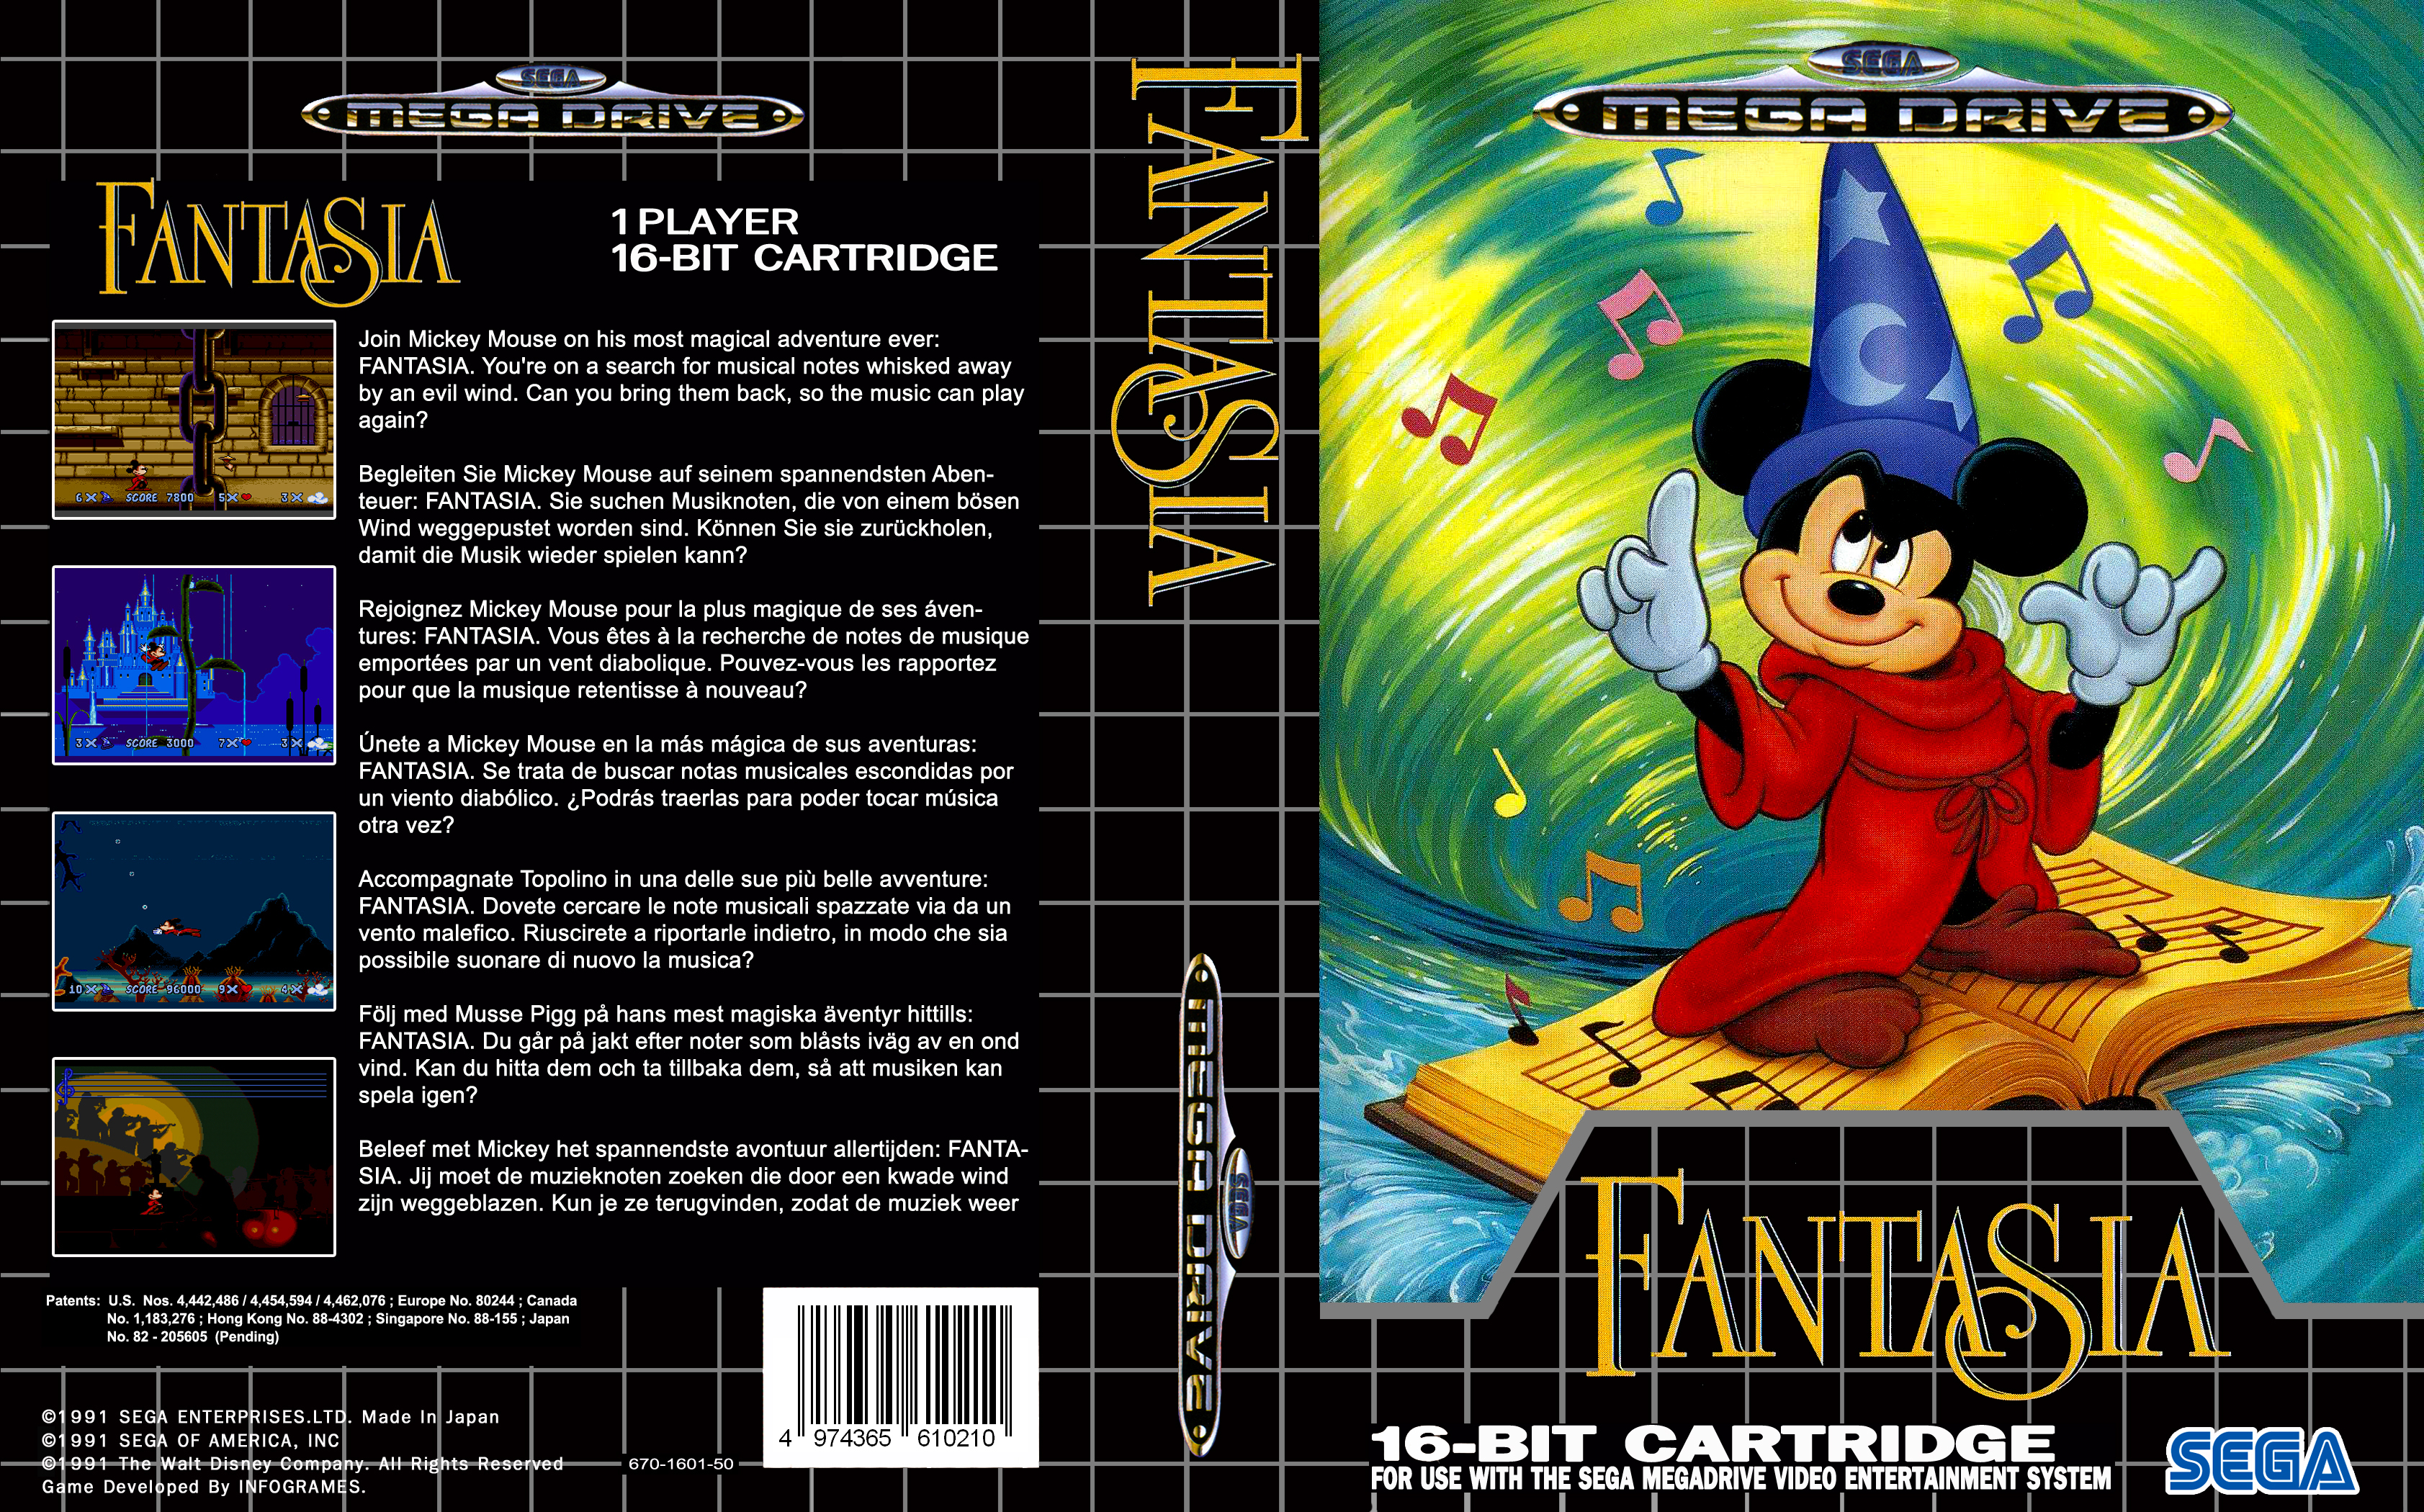 a8d6951d6 To save right click on the cover below and choose Save Picture As...  Fantasia